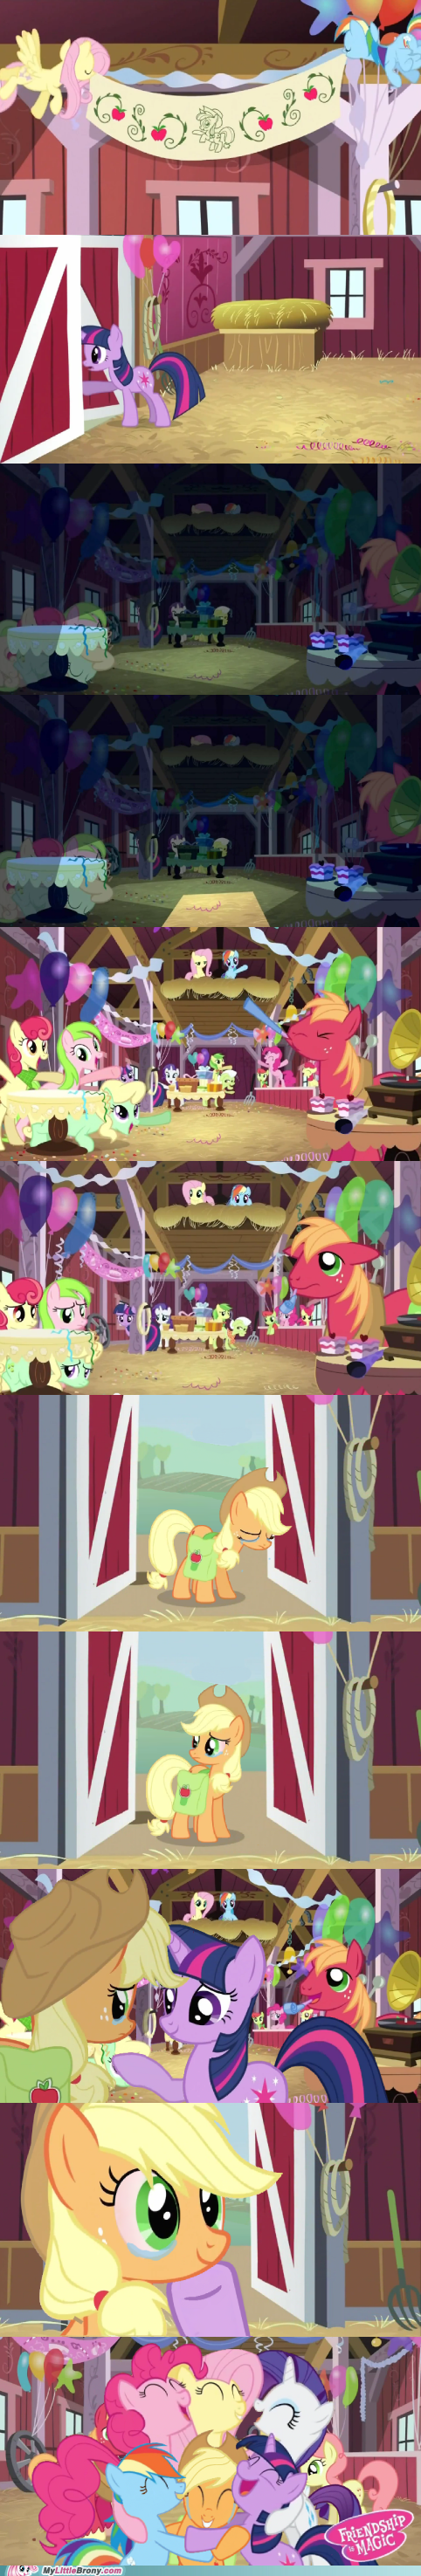 applejack friends lovely comic